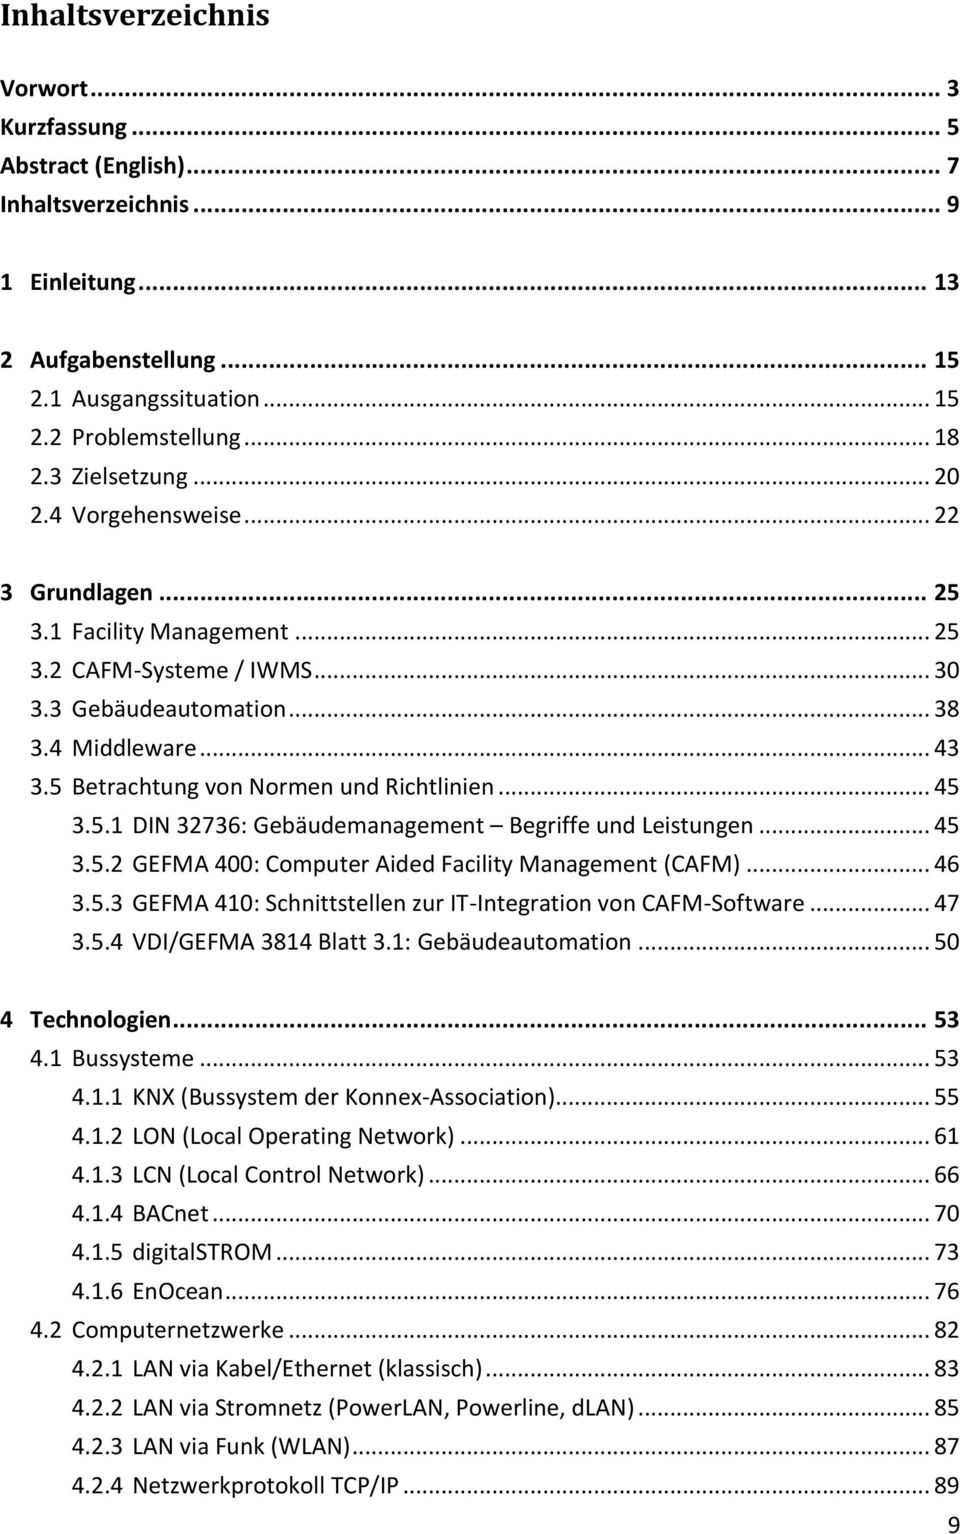 5 Betrachtung von Normen und Richtlinien... 45 3.5.1 DIN 32736: Gebäudemanagement Begriffe und Leistungen... 45 3.5.2 GEFMA 400: Computer Aided Facility Management (CAFM)... 46 3.5.3 GEFMA 410: Schnittstellen zur IT-Integration von CAFM-Software.